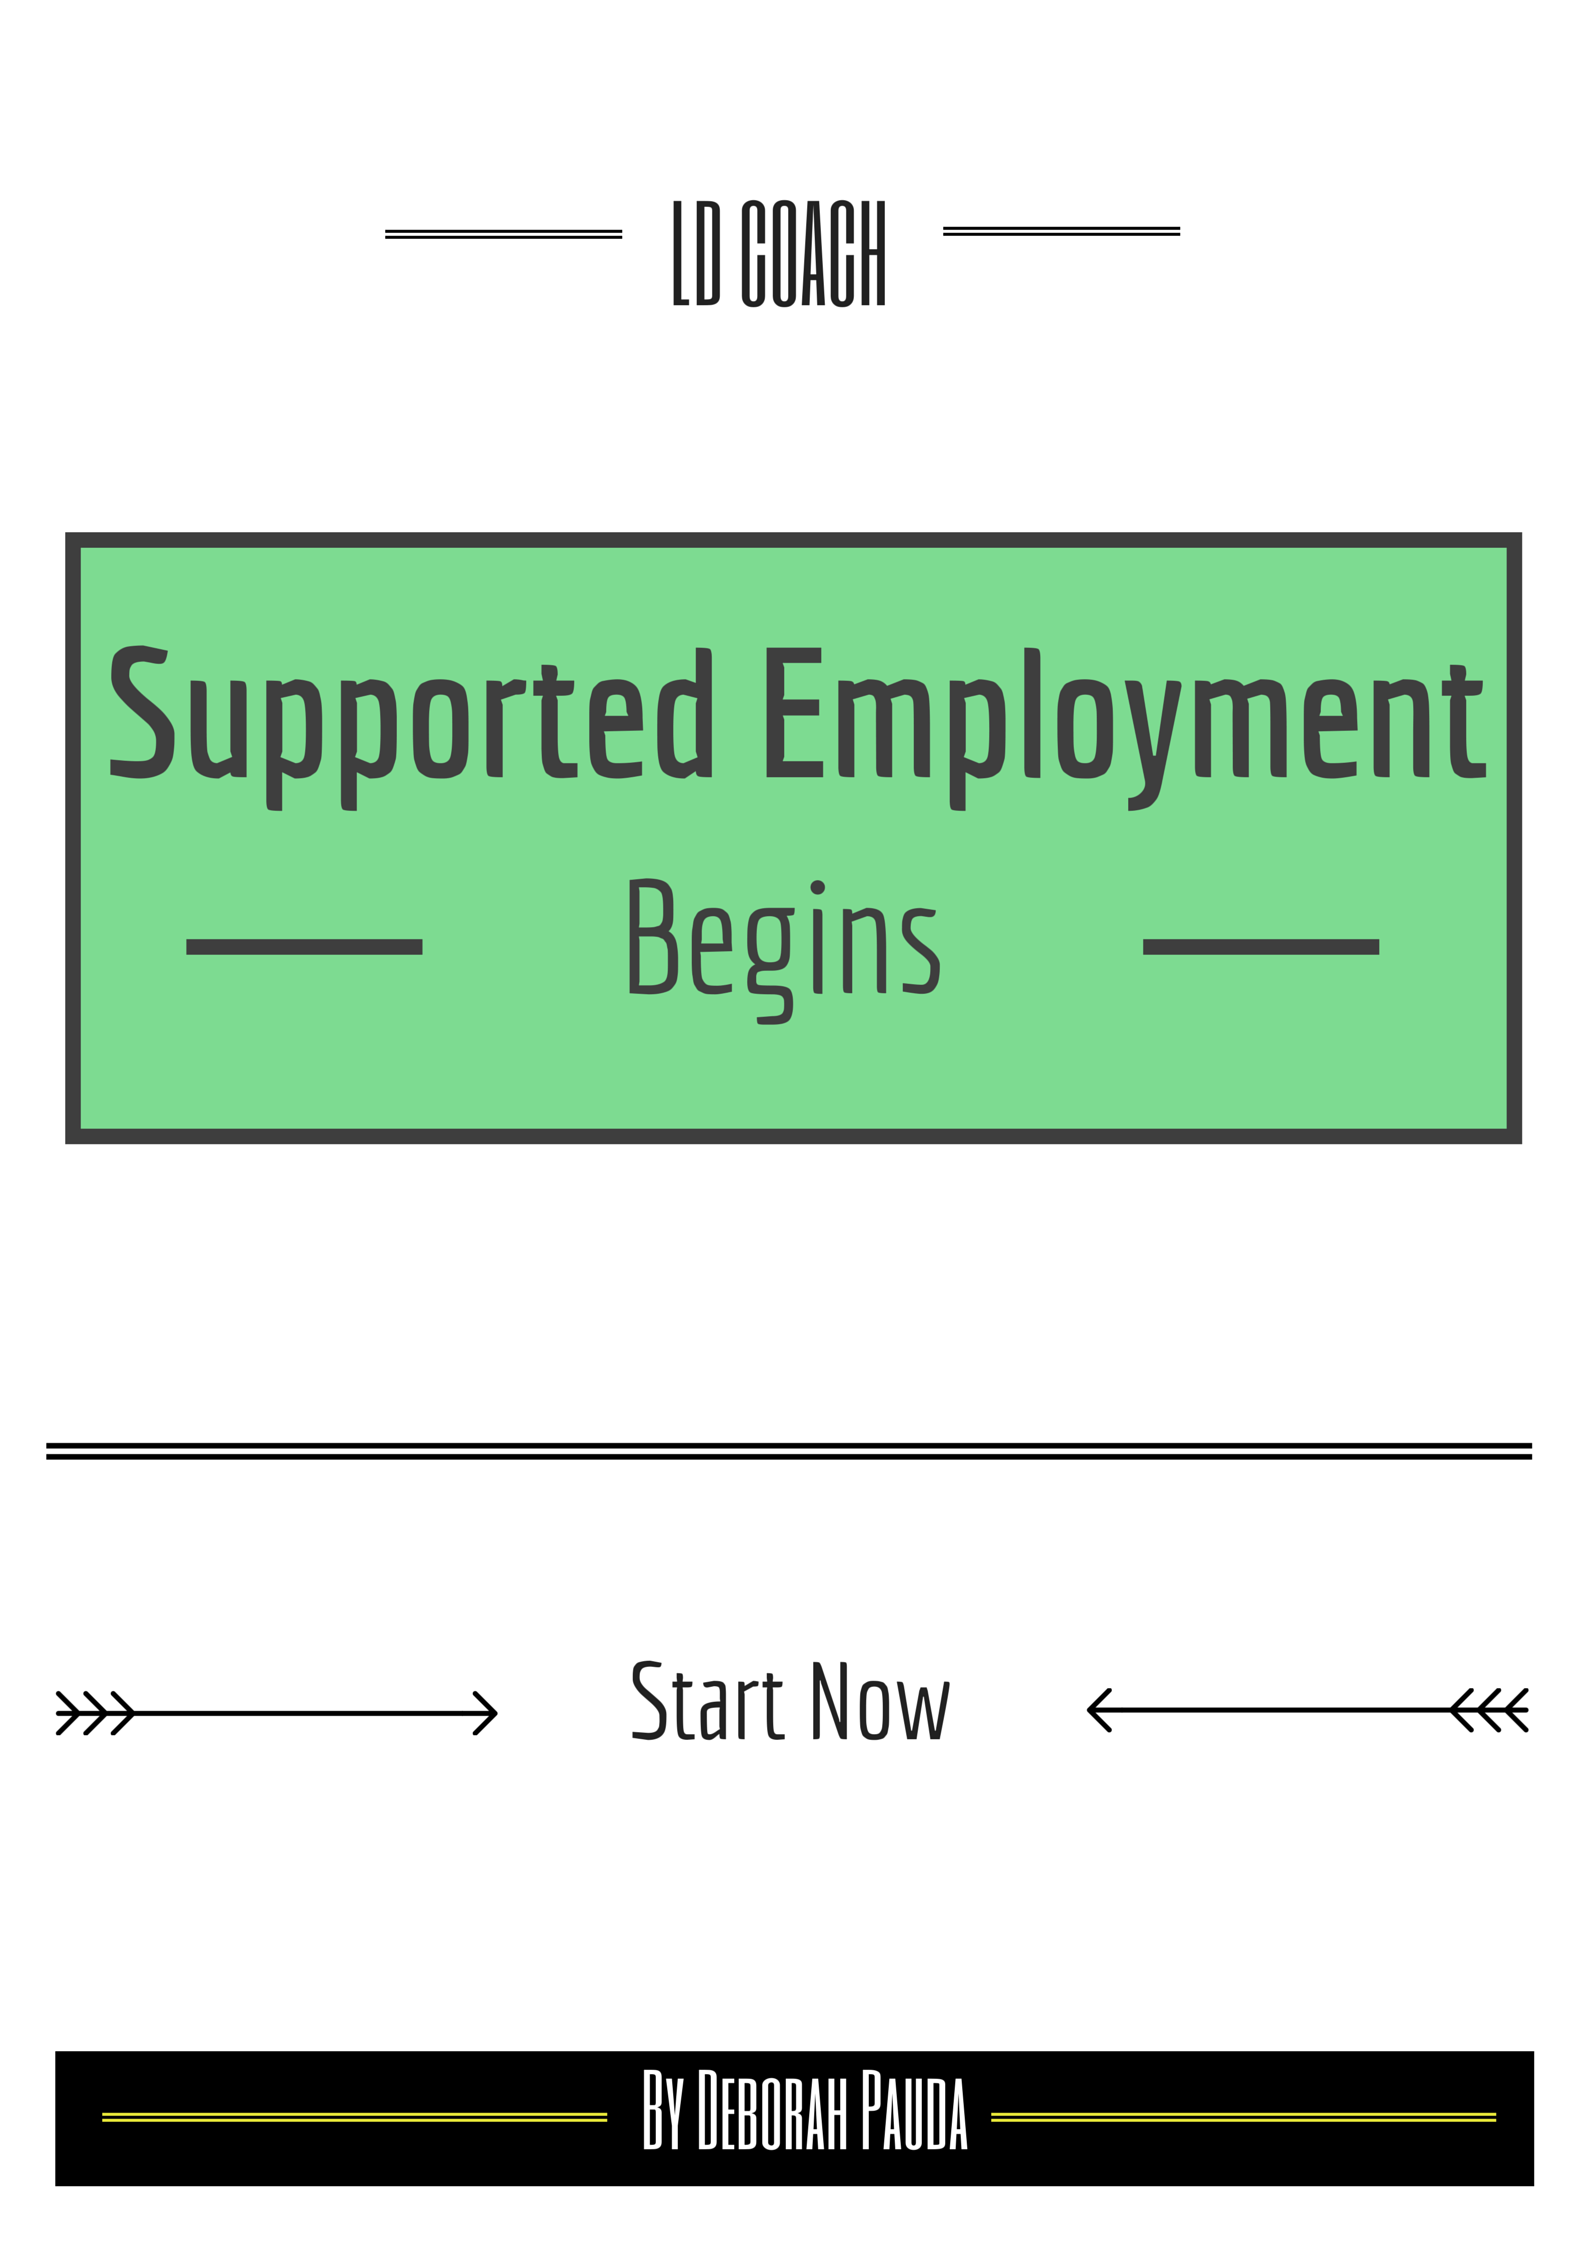 Supported Employment Begins